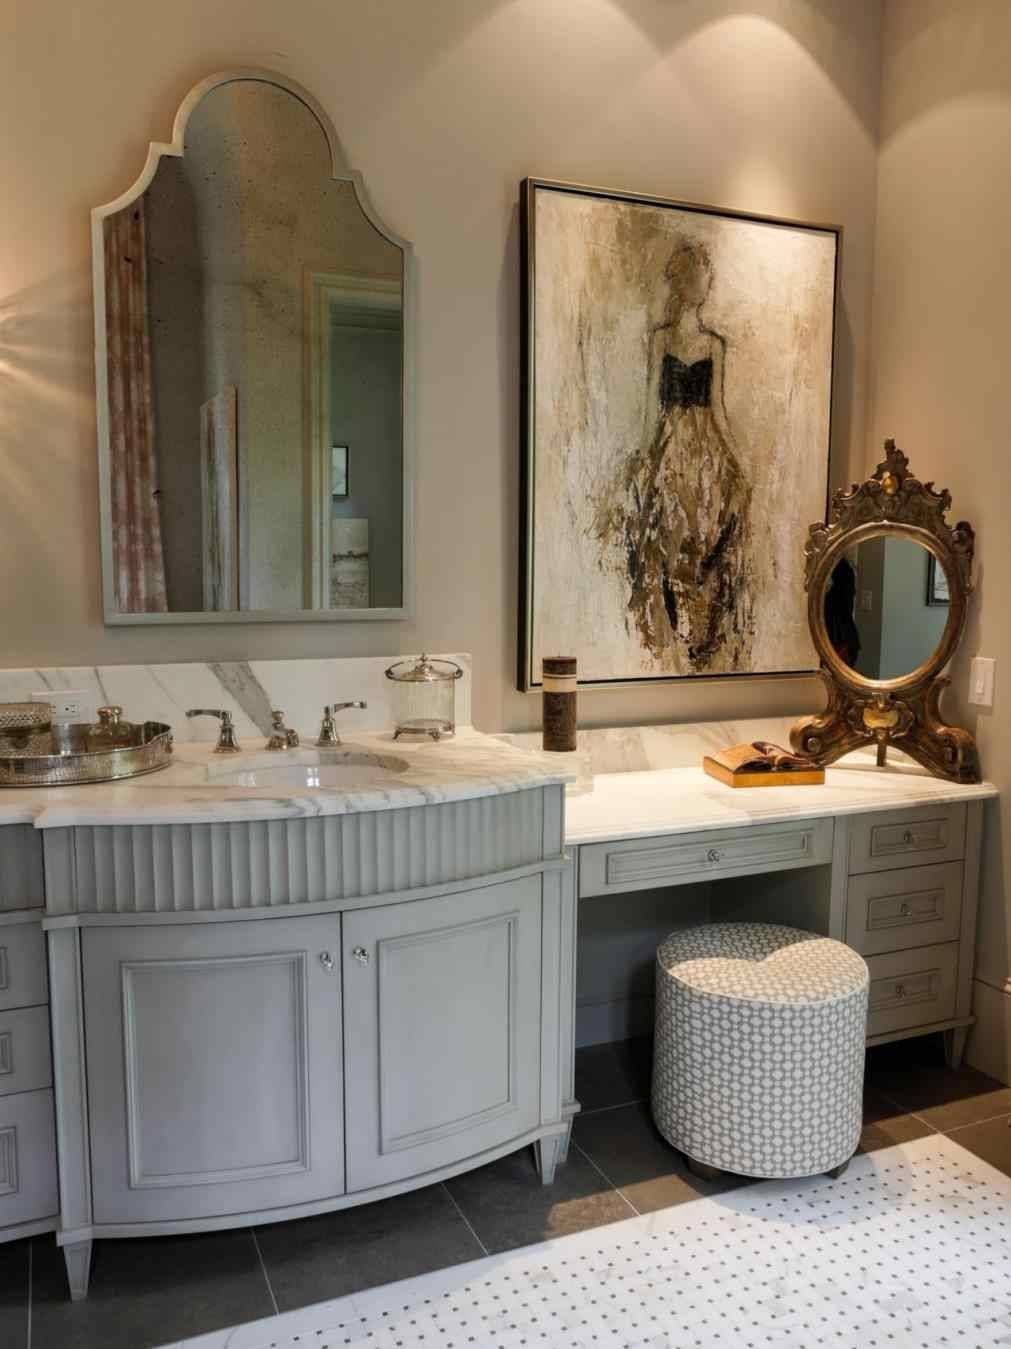 Decorating Ideas Benjamin Moore Home French Country Bathroom Wall Pertaining To Recent French Country Wall Art (View 7 of 20)